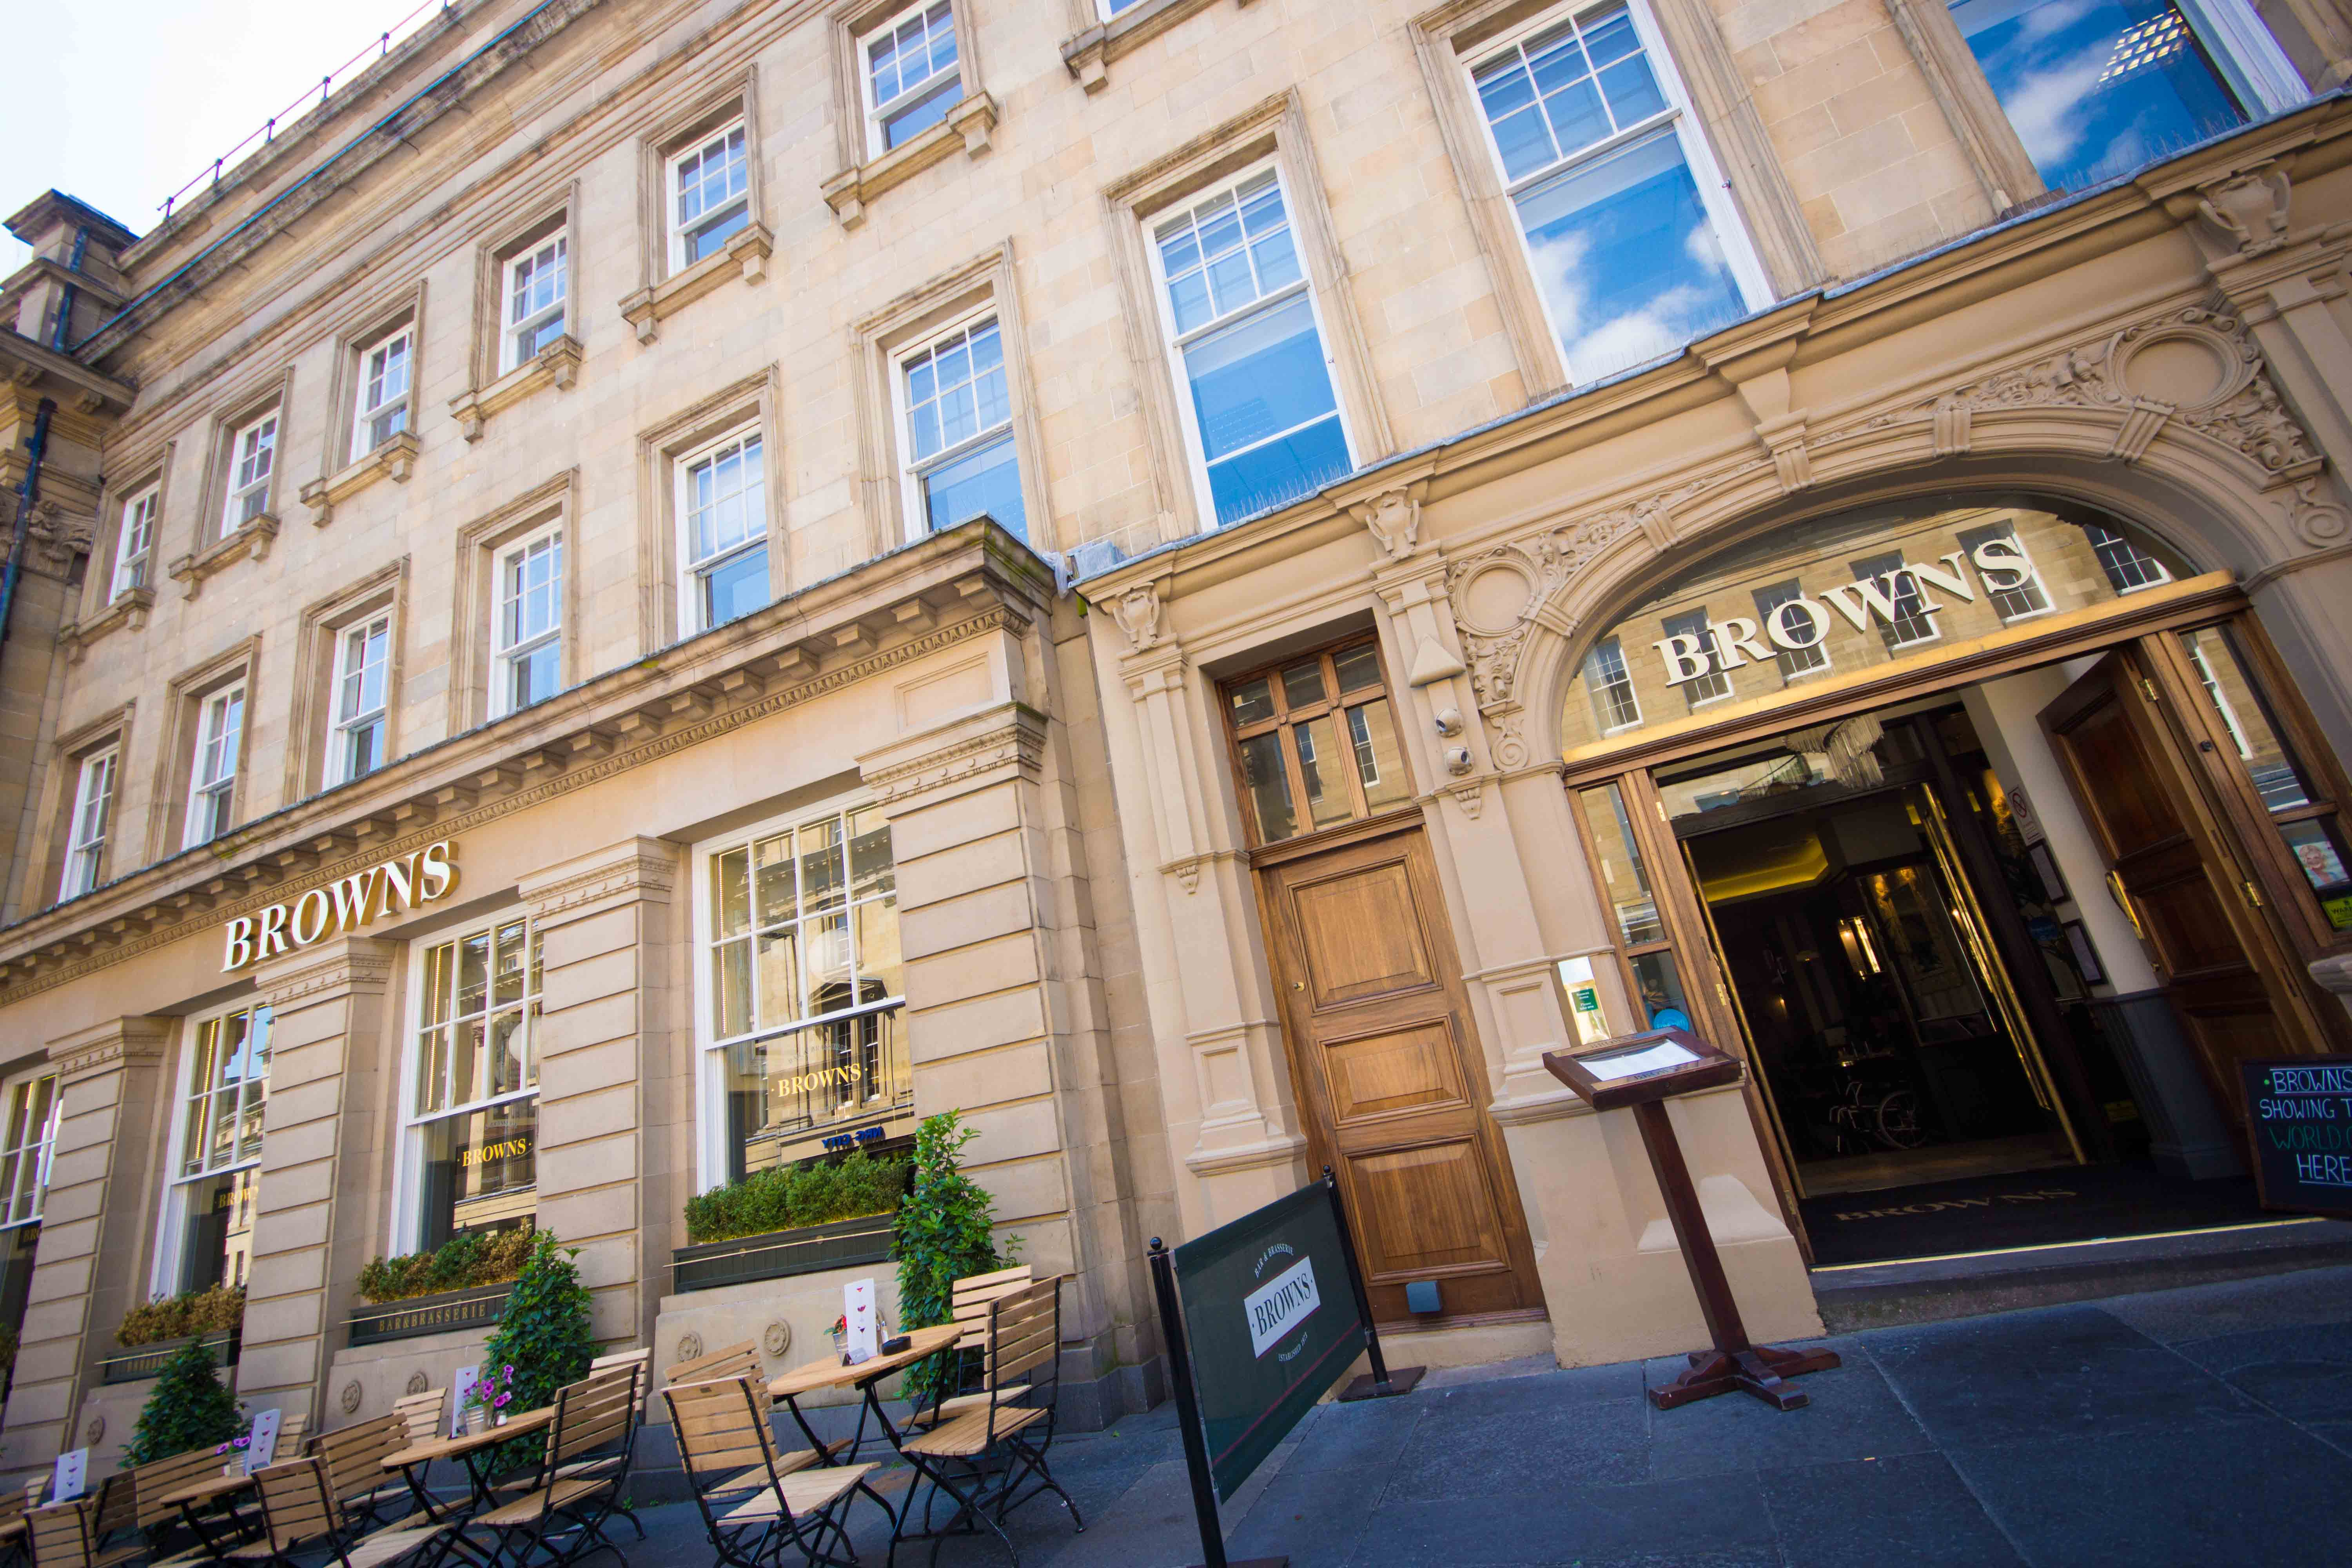 Browns Bar & Brasserie - Newcastle - Newcastle